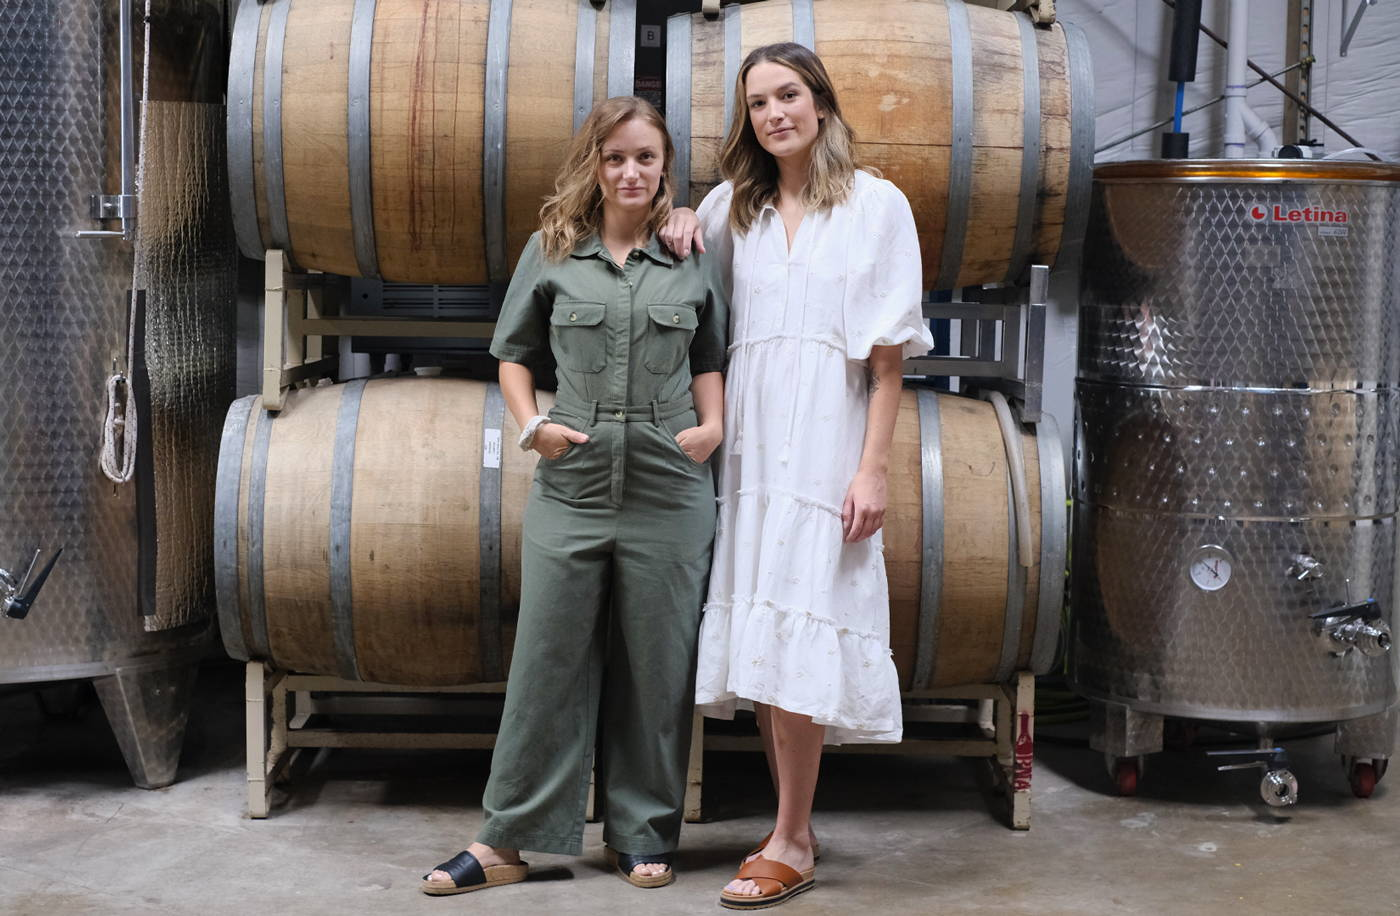 Women winemakers Adrienne and Ashlyn of The Austin Winery